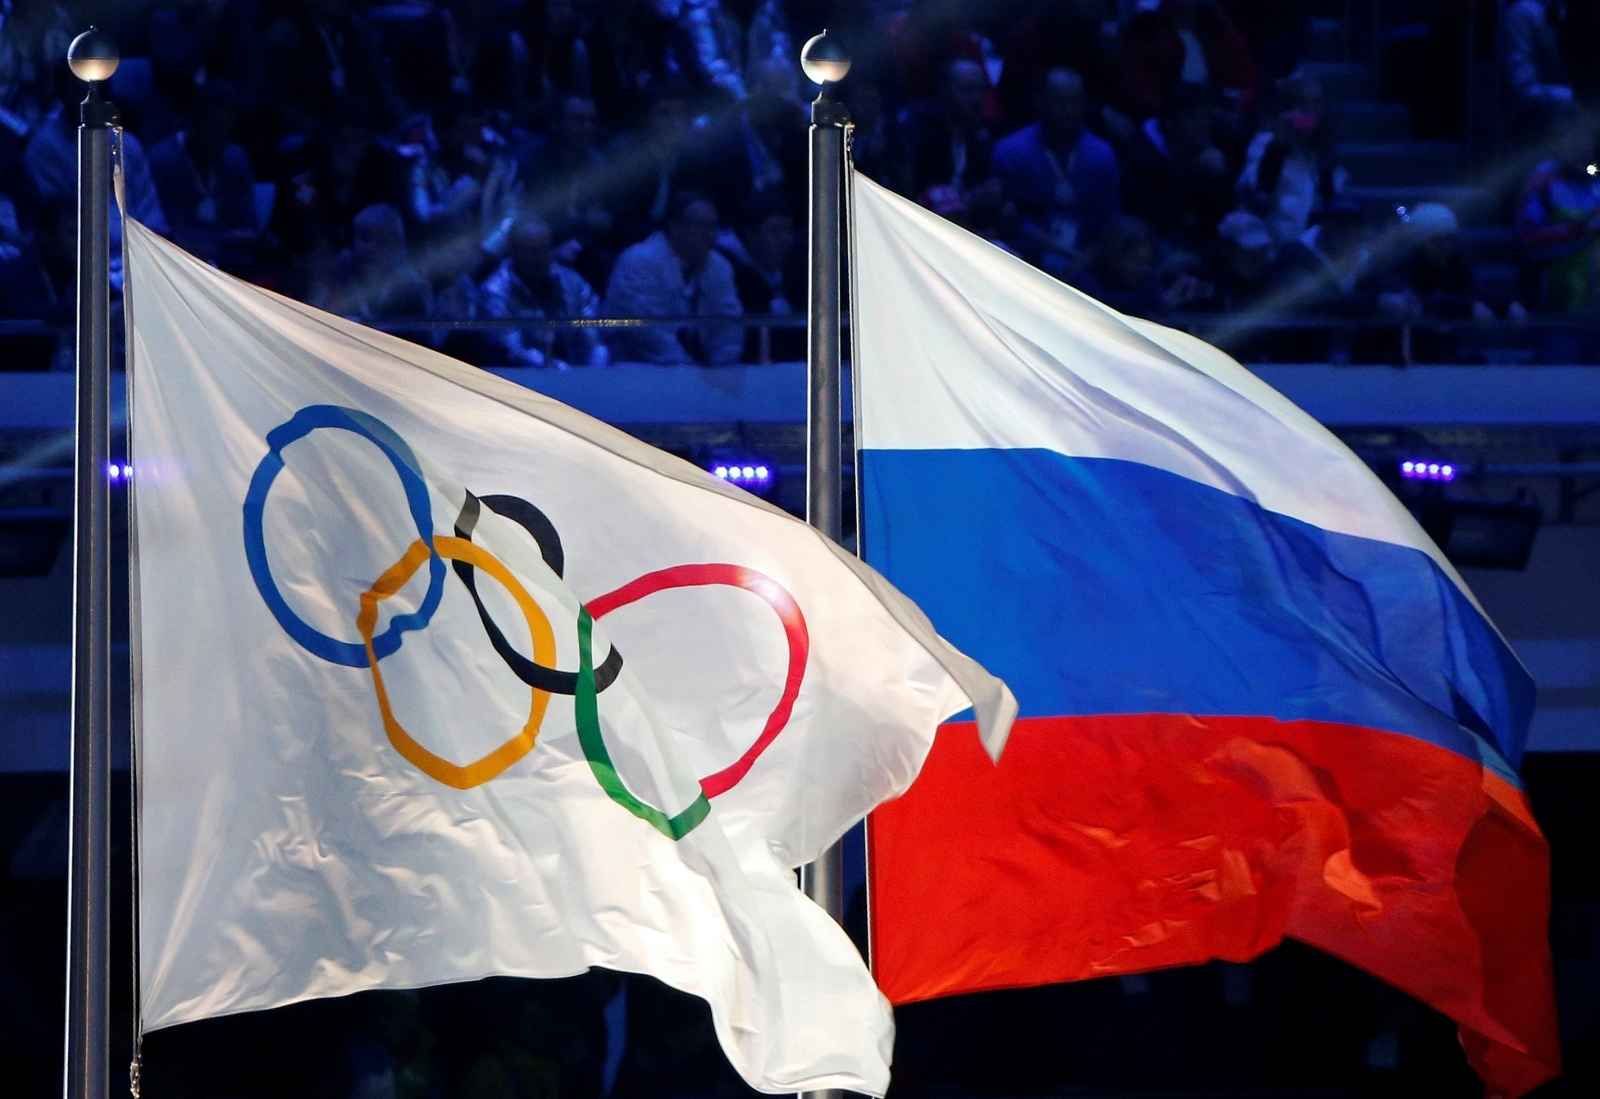 Russian and Olympic flags at Sochi 2014